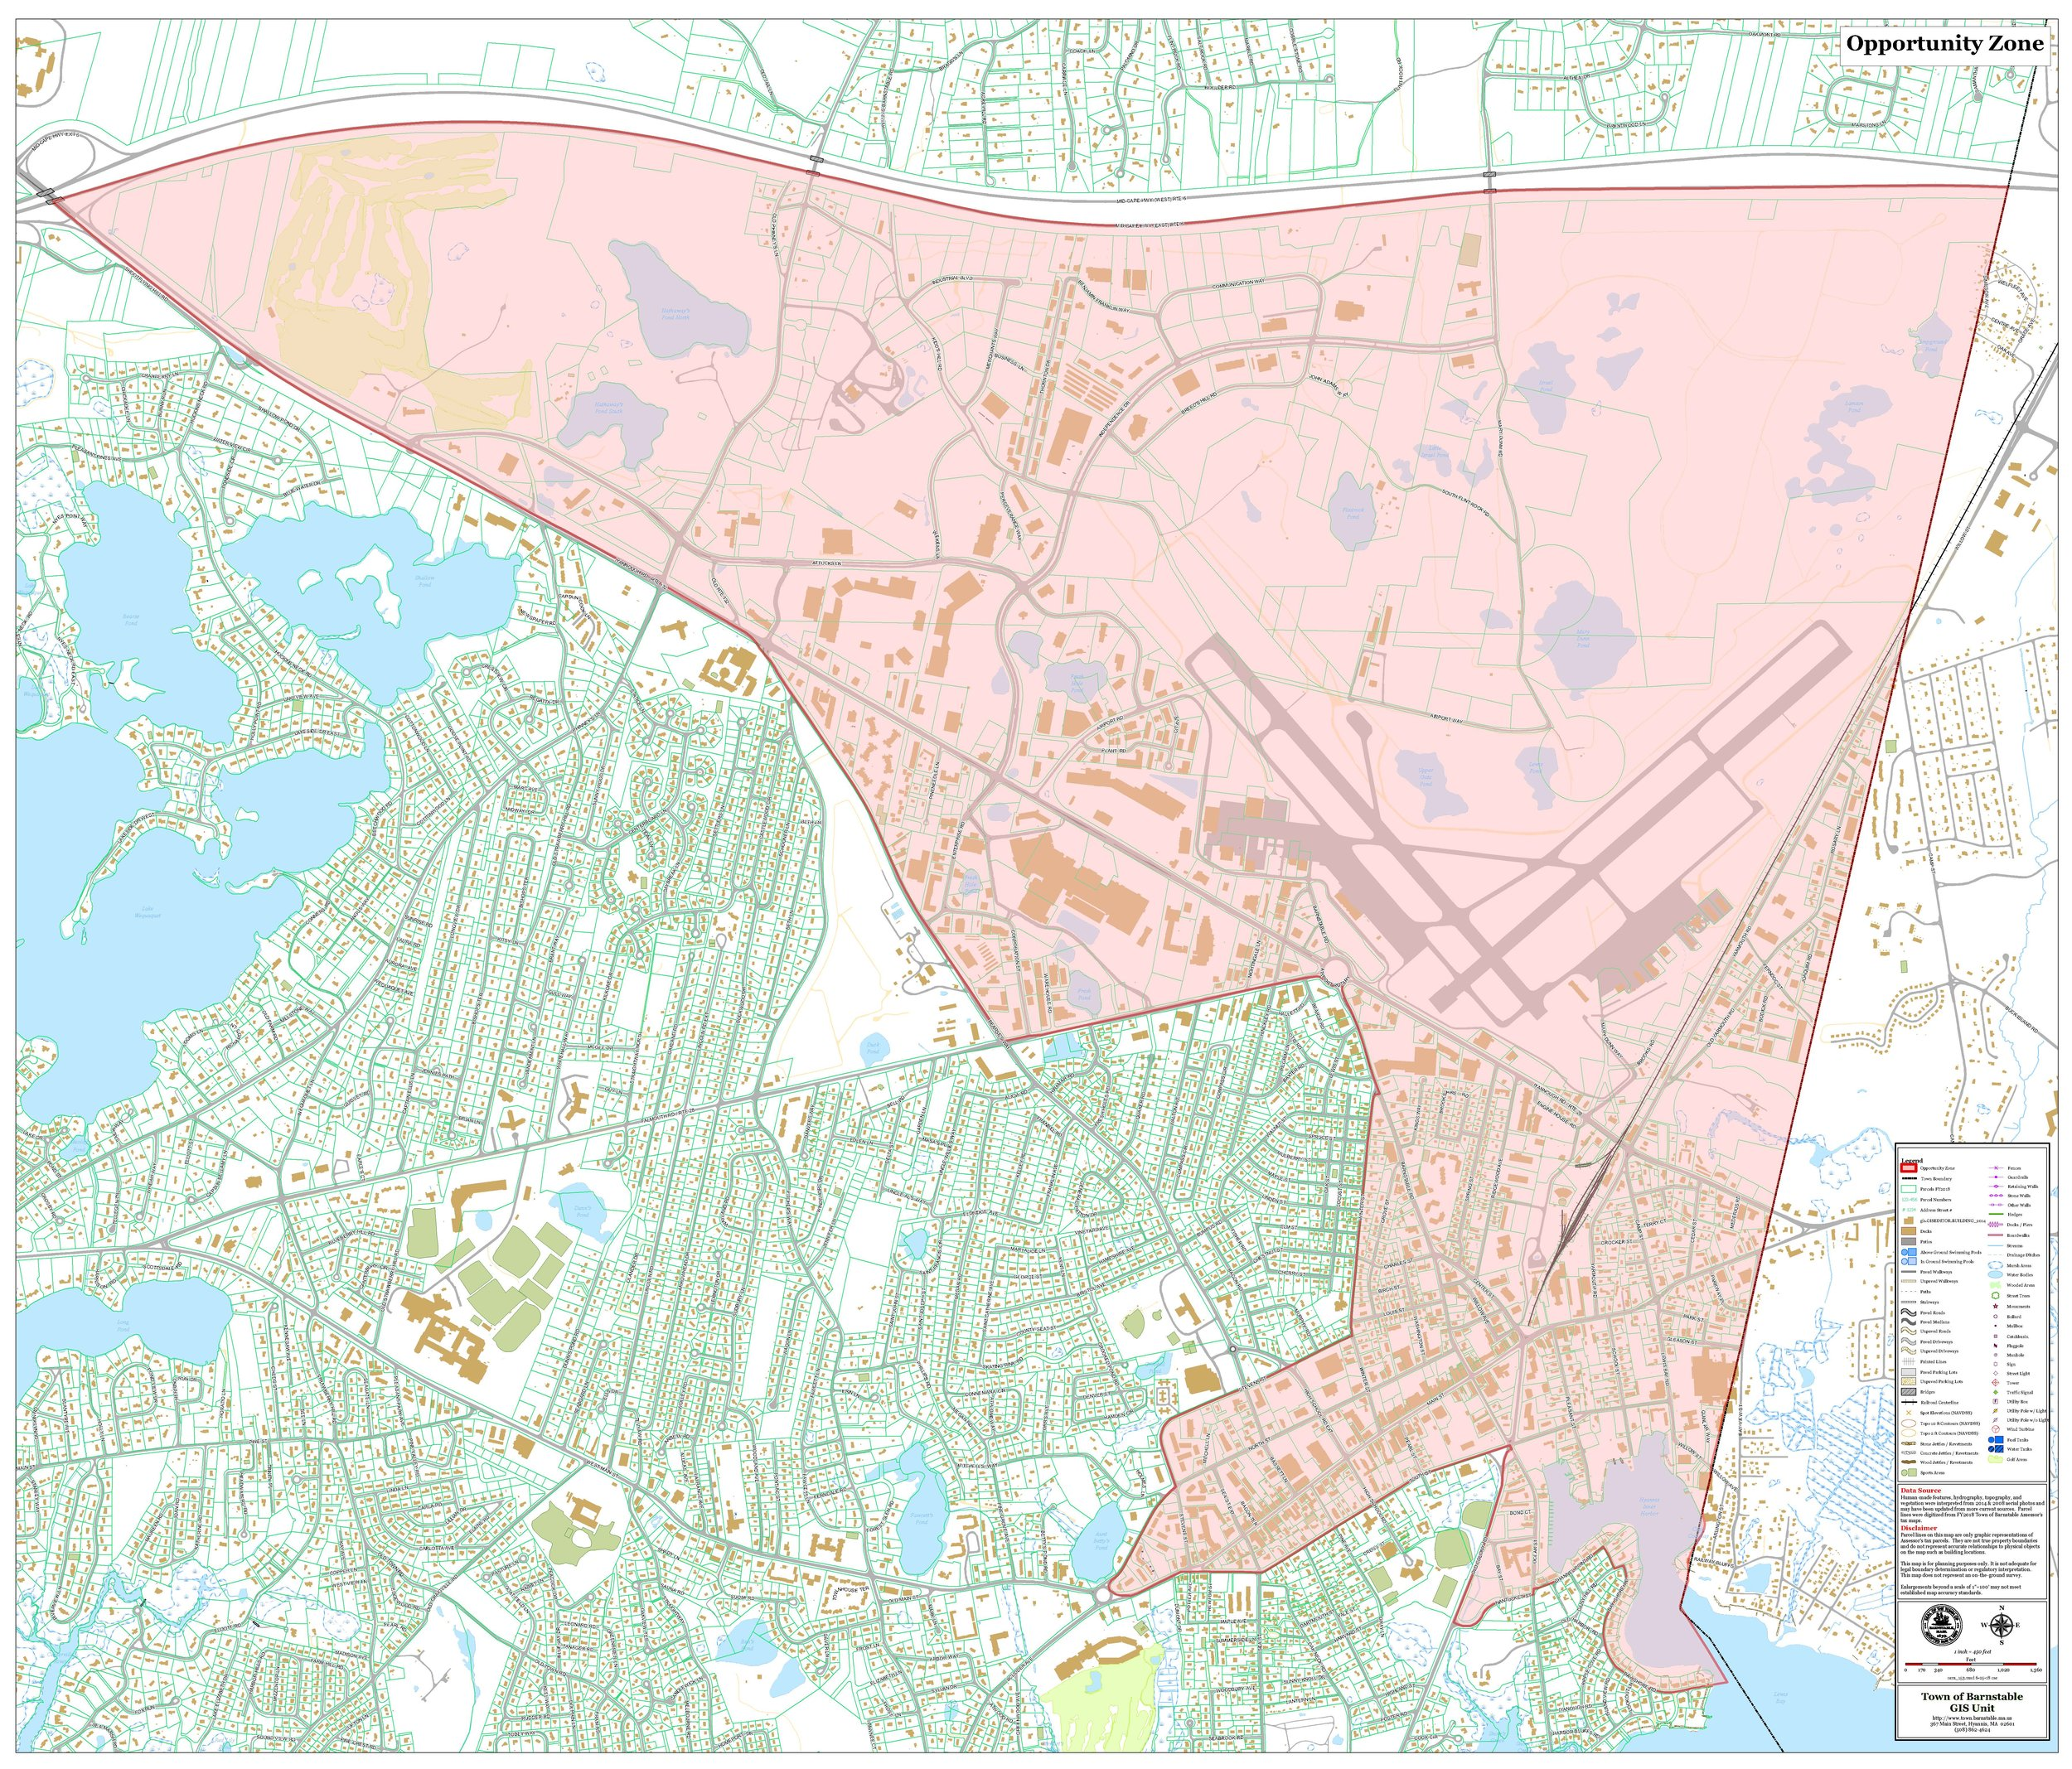 Hyannis Opportunity Zone Map-Census Tract 25001015300